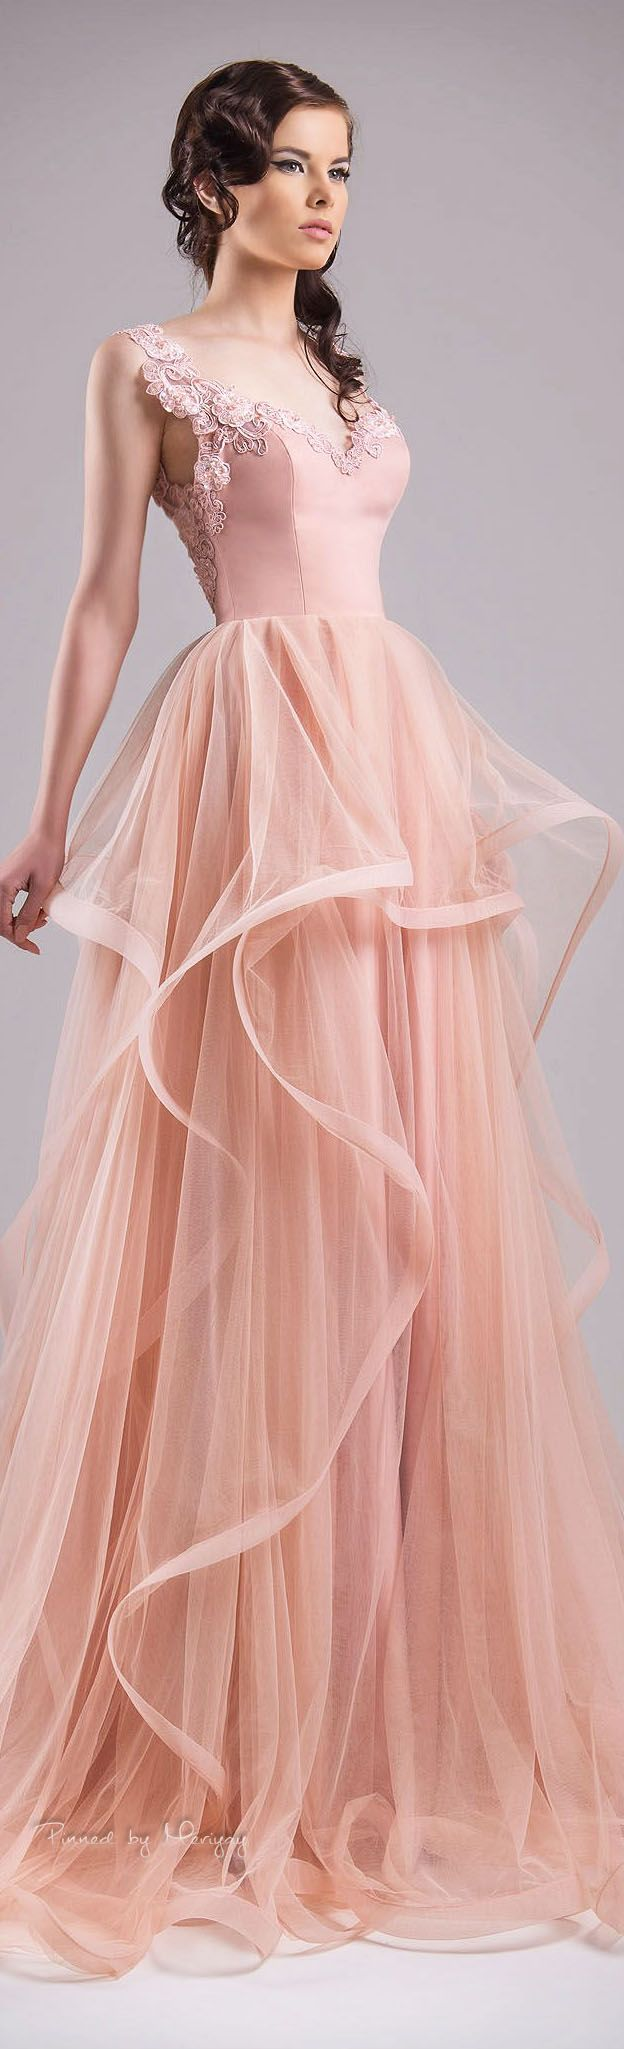 Beautiful | Dress Heaven | Pinterest | Vestiditos, Vestidos de noche ...